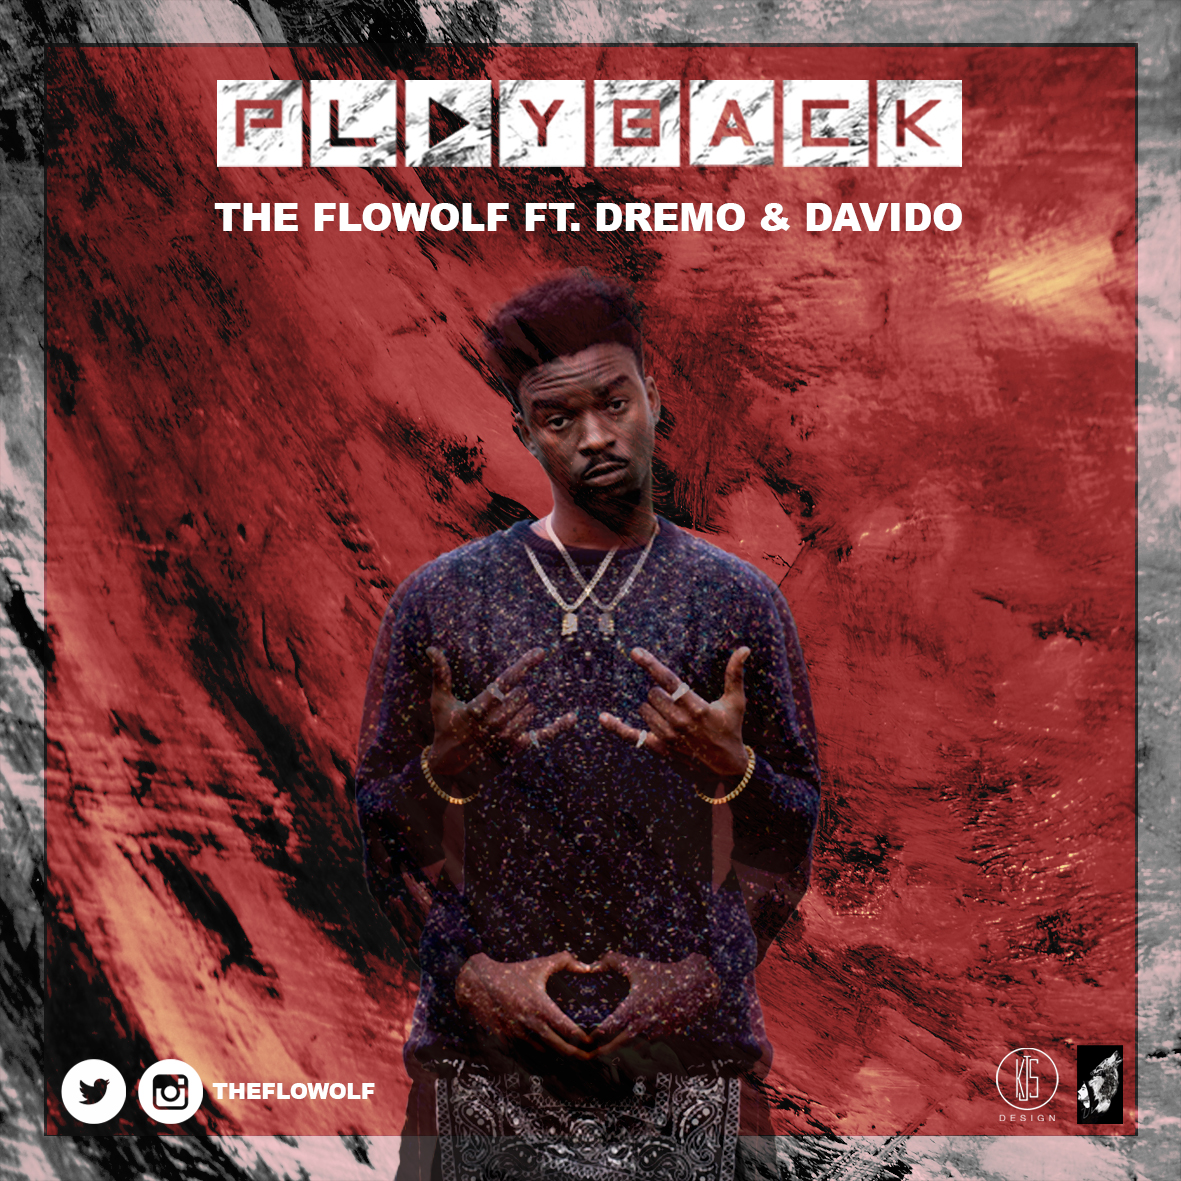 VIDEO: The Flowolf Ft. Davido & Dremo - Playback